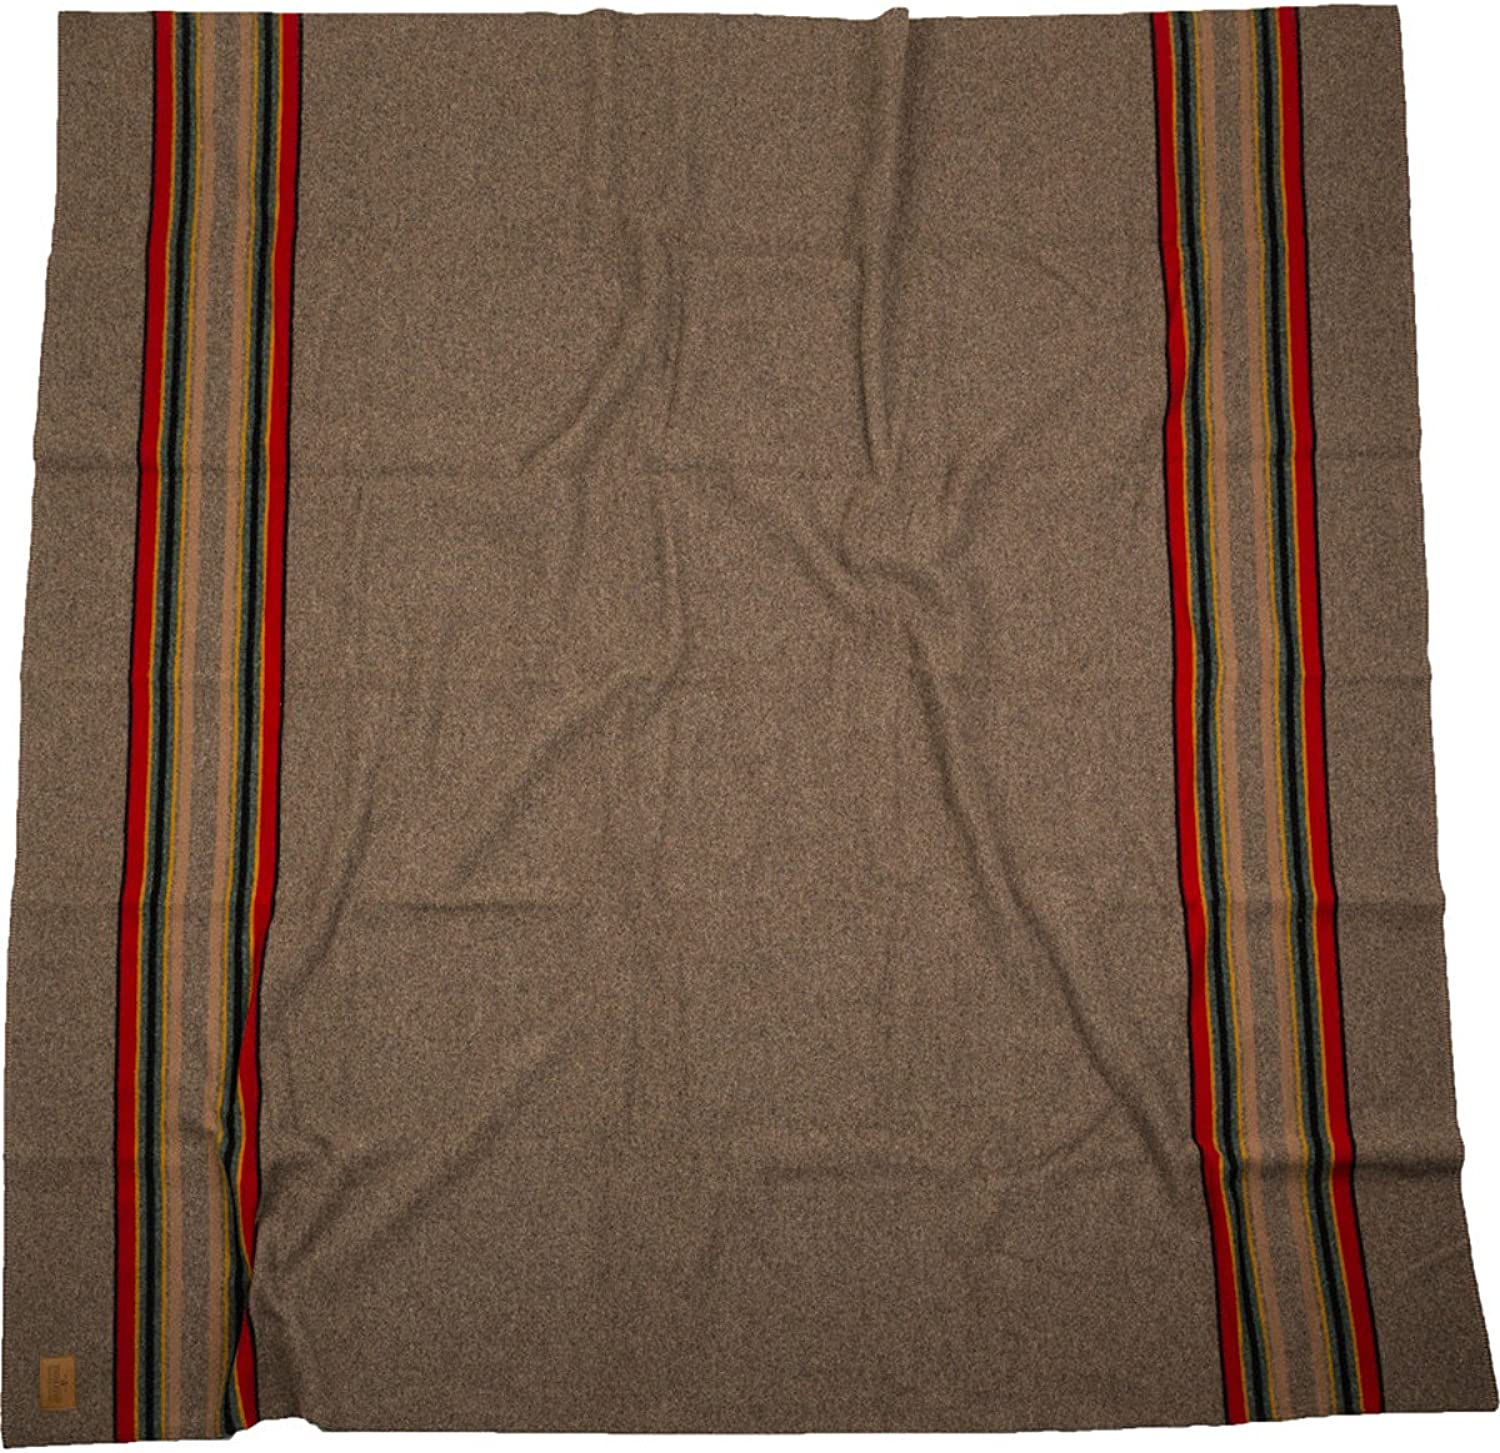 calidad auténtica Pendleton Twin Camp Camp Camp Blanket without Cocherier - Mineral Umber by Pendleton  comprar ahora